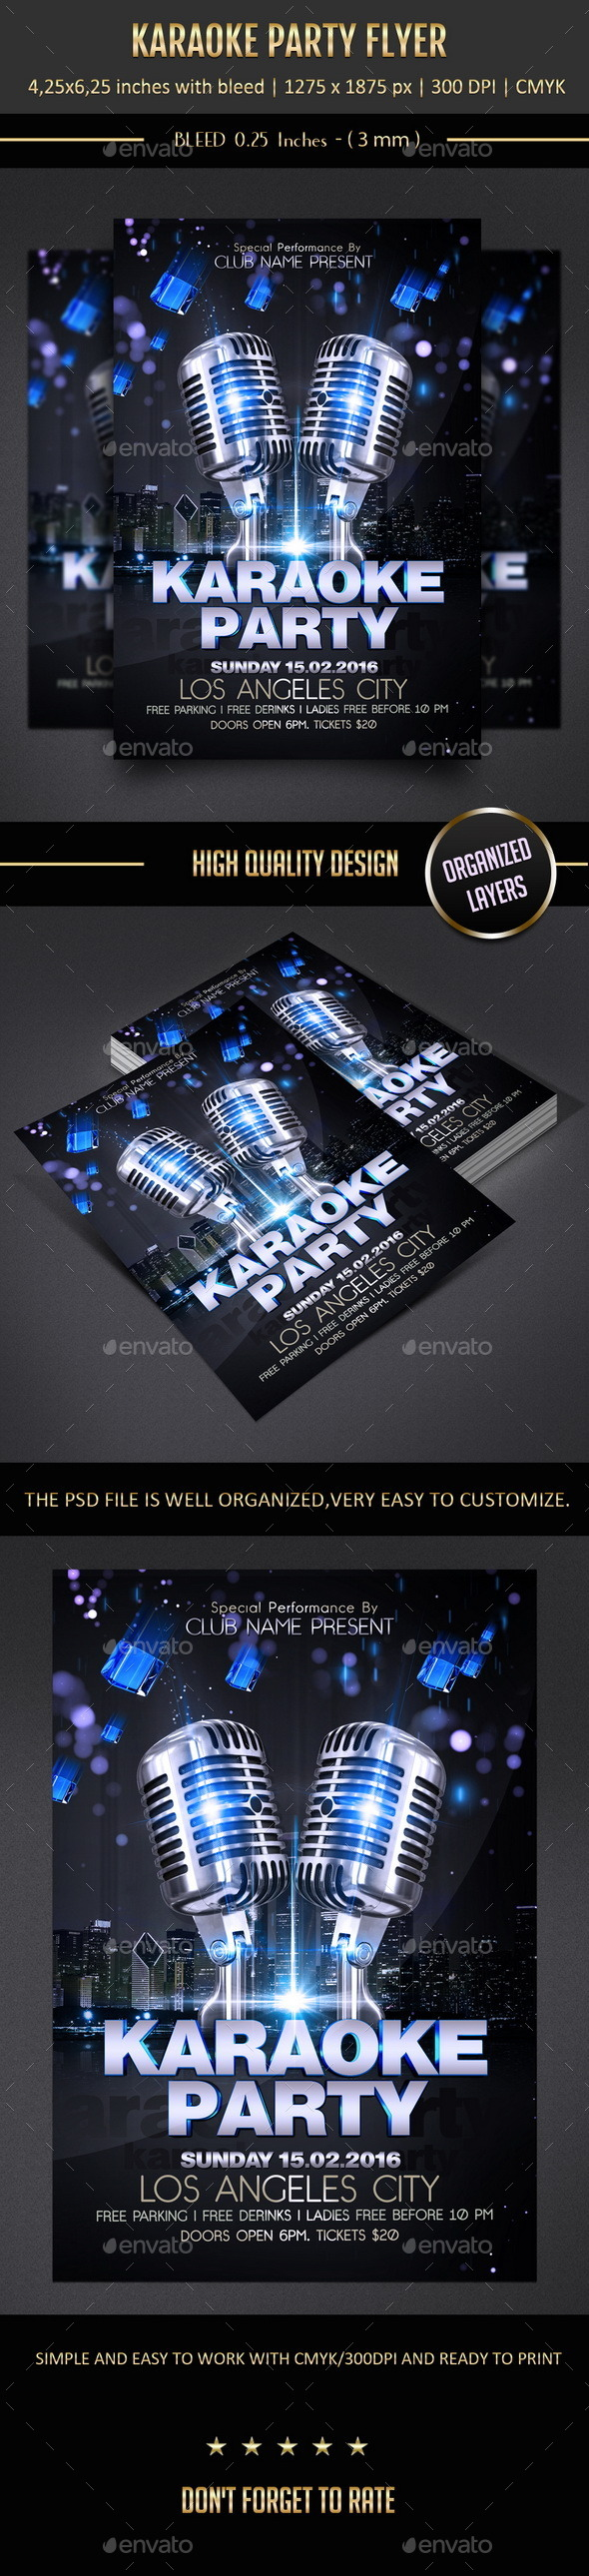 GraphicRiver Karaoke Party Flyer 10531294